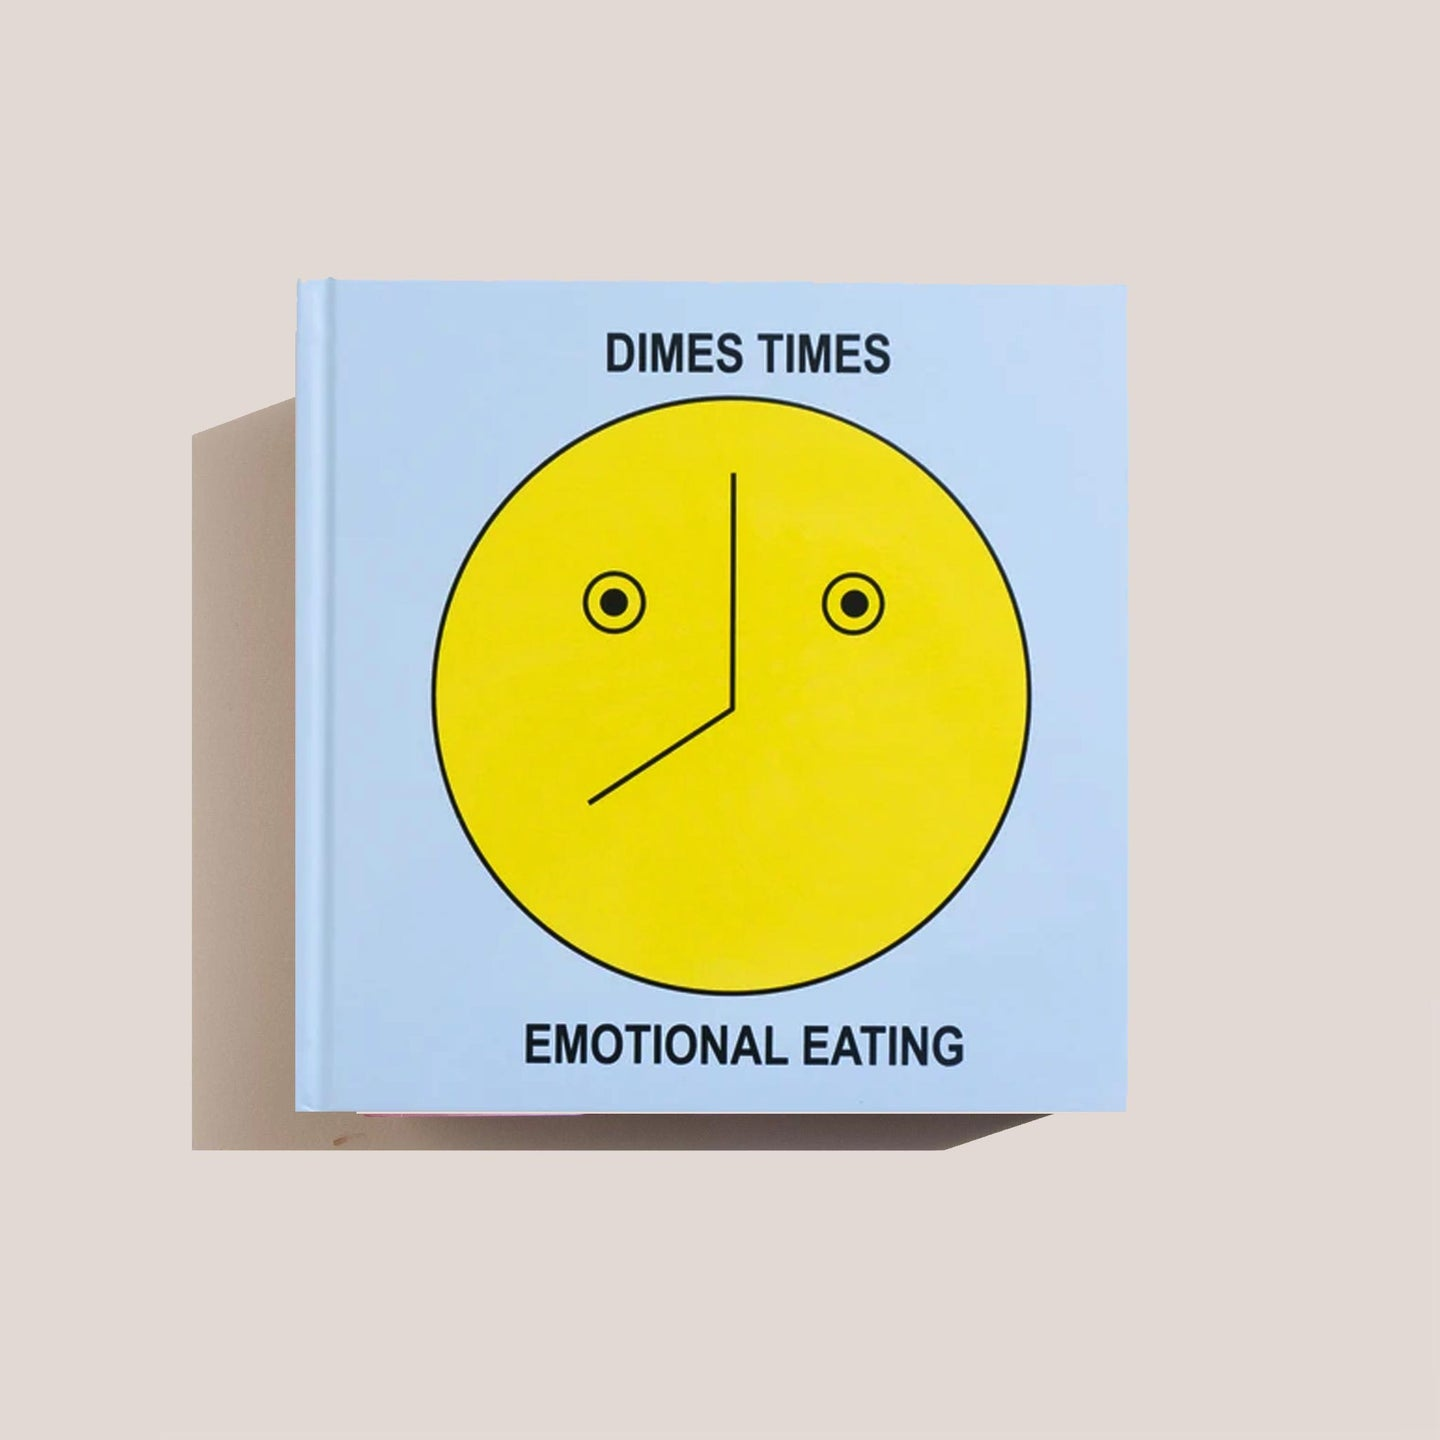 Dimes Times: Emotional Eating, available at LCD.